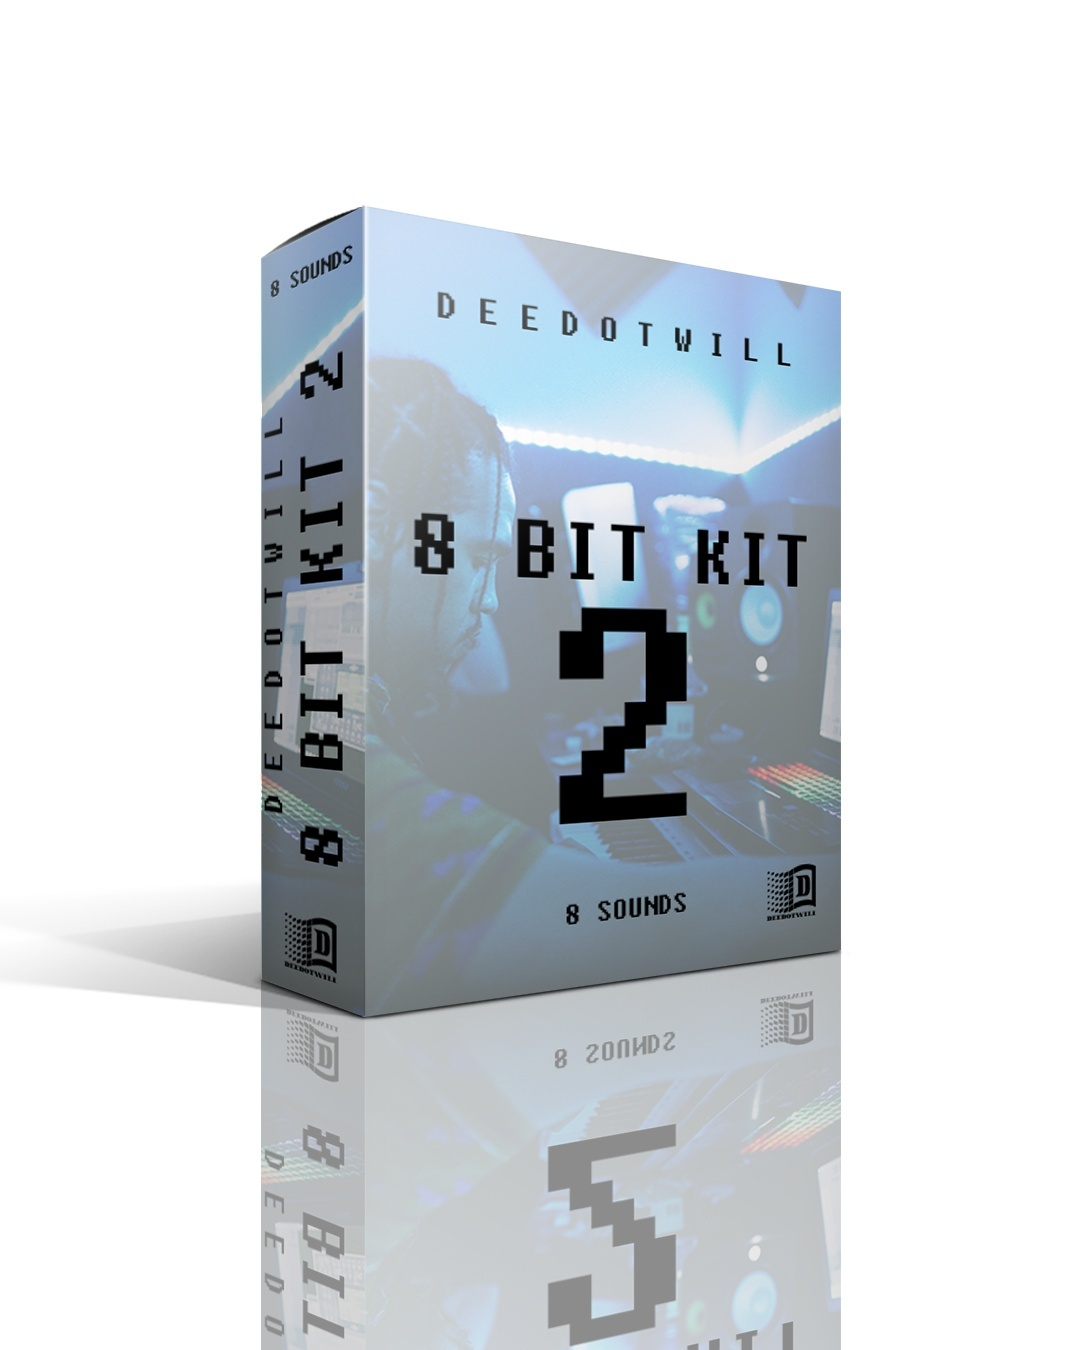 Deedotwill - 8 Bit Kit 2